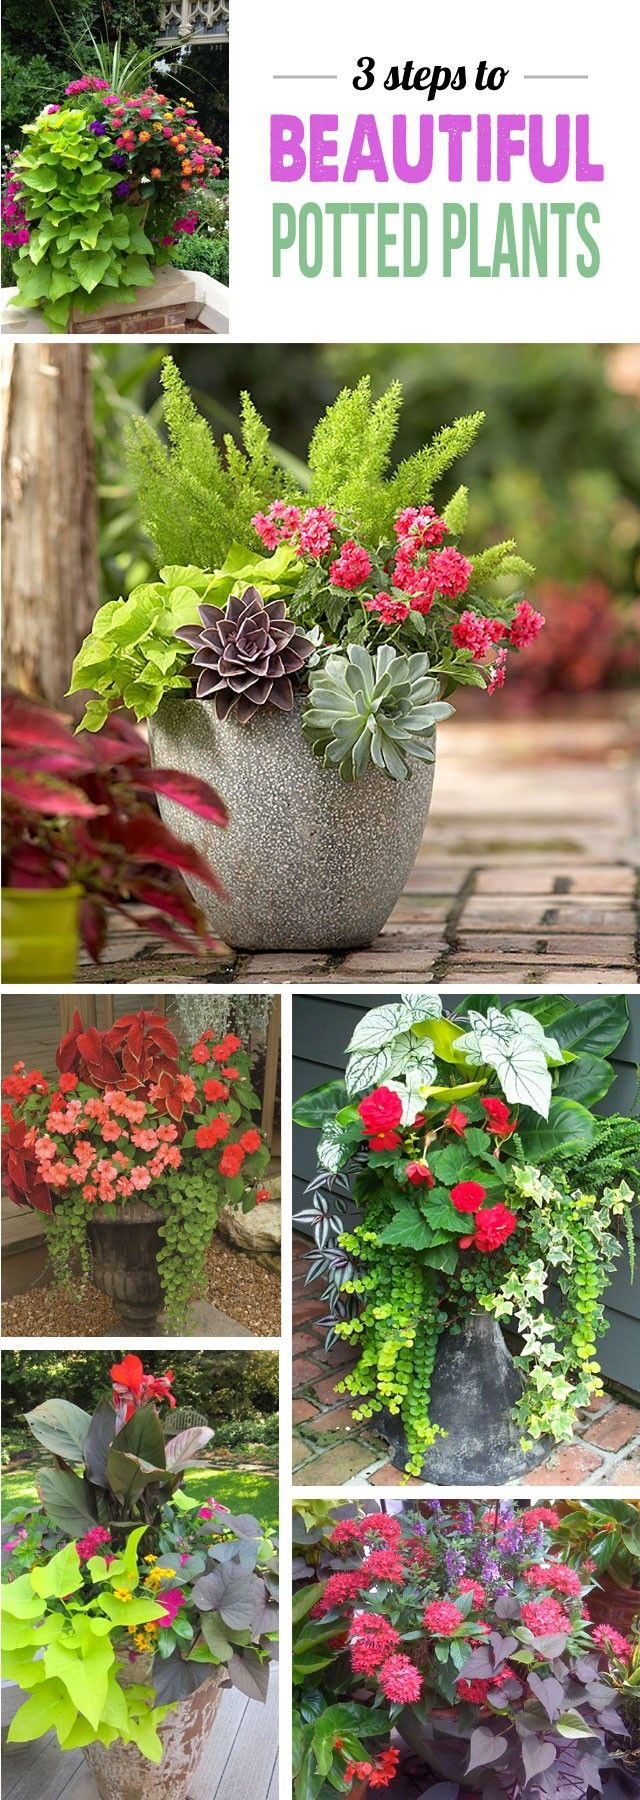 Garden Ideas On Pinterest diy garden ideas pinterest pysblpyb Great Tips For Making Stunning Potted Plant Arrangements Cant Wait To Add Some